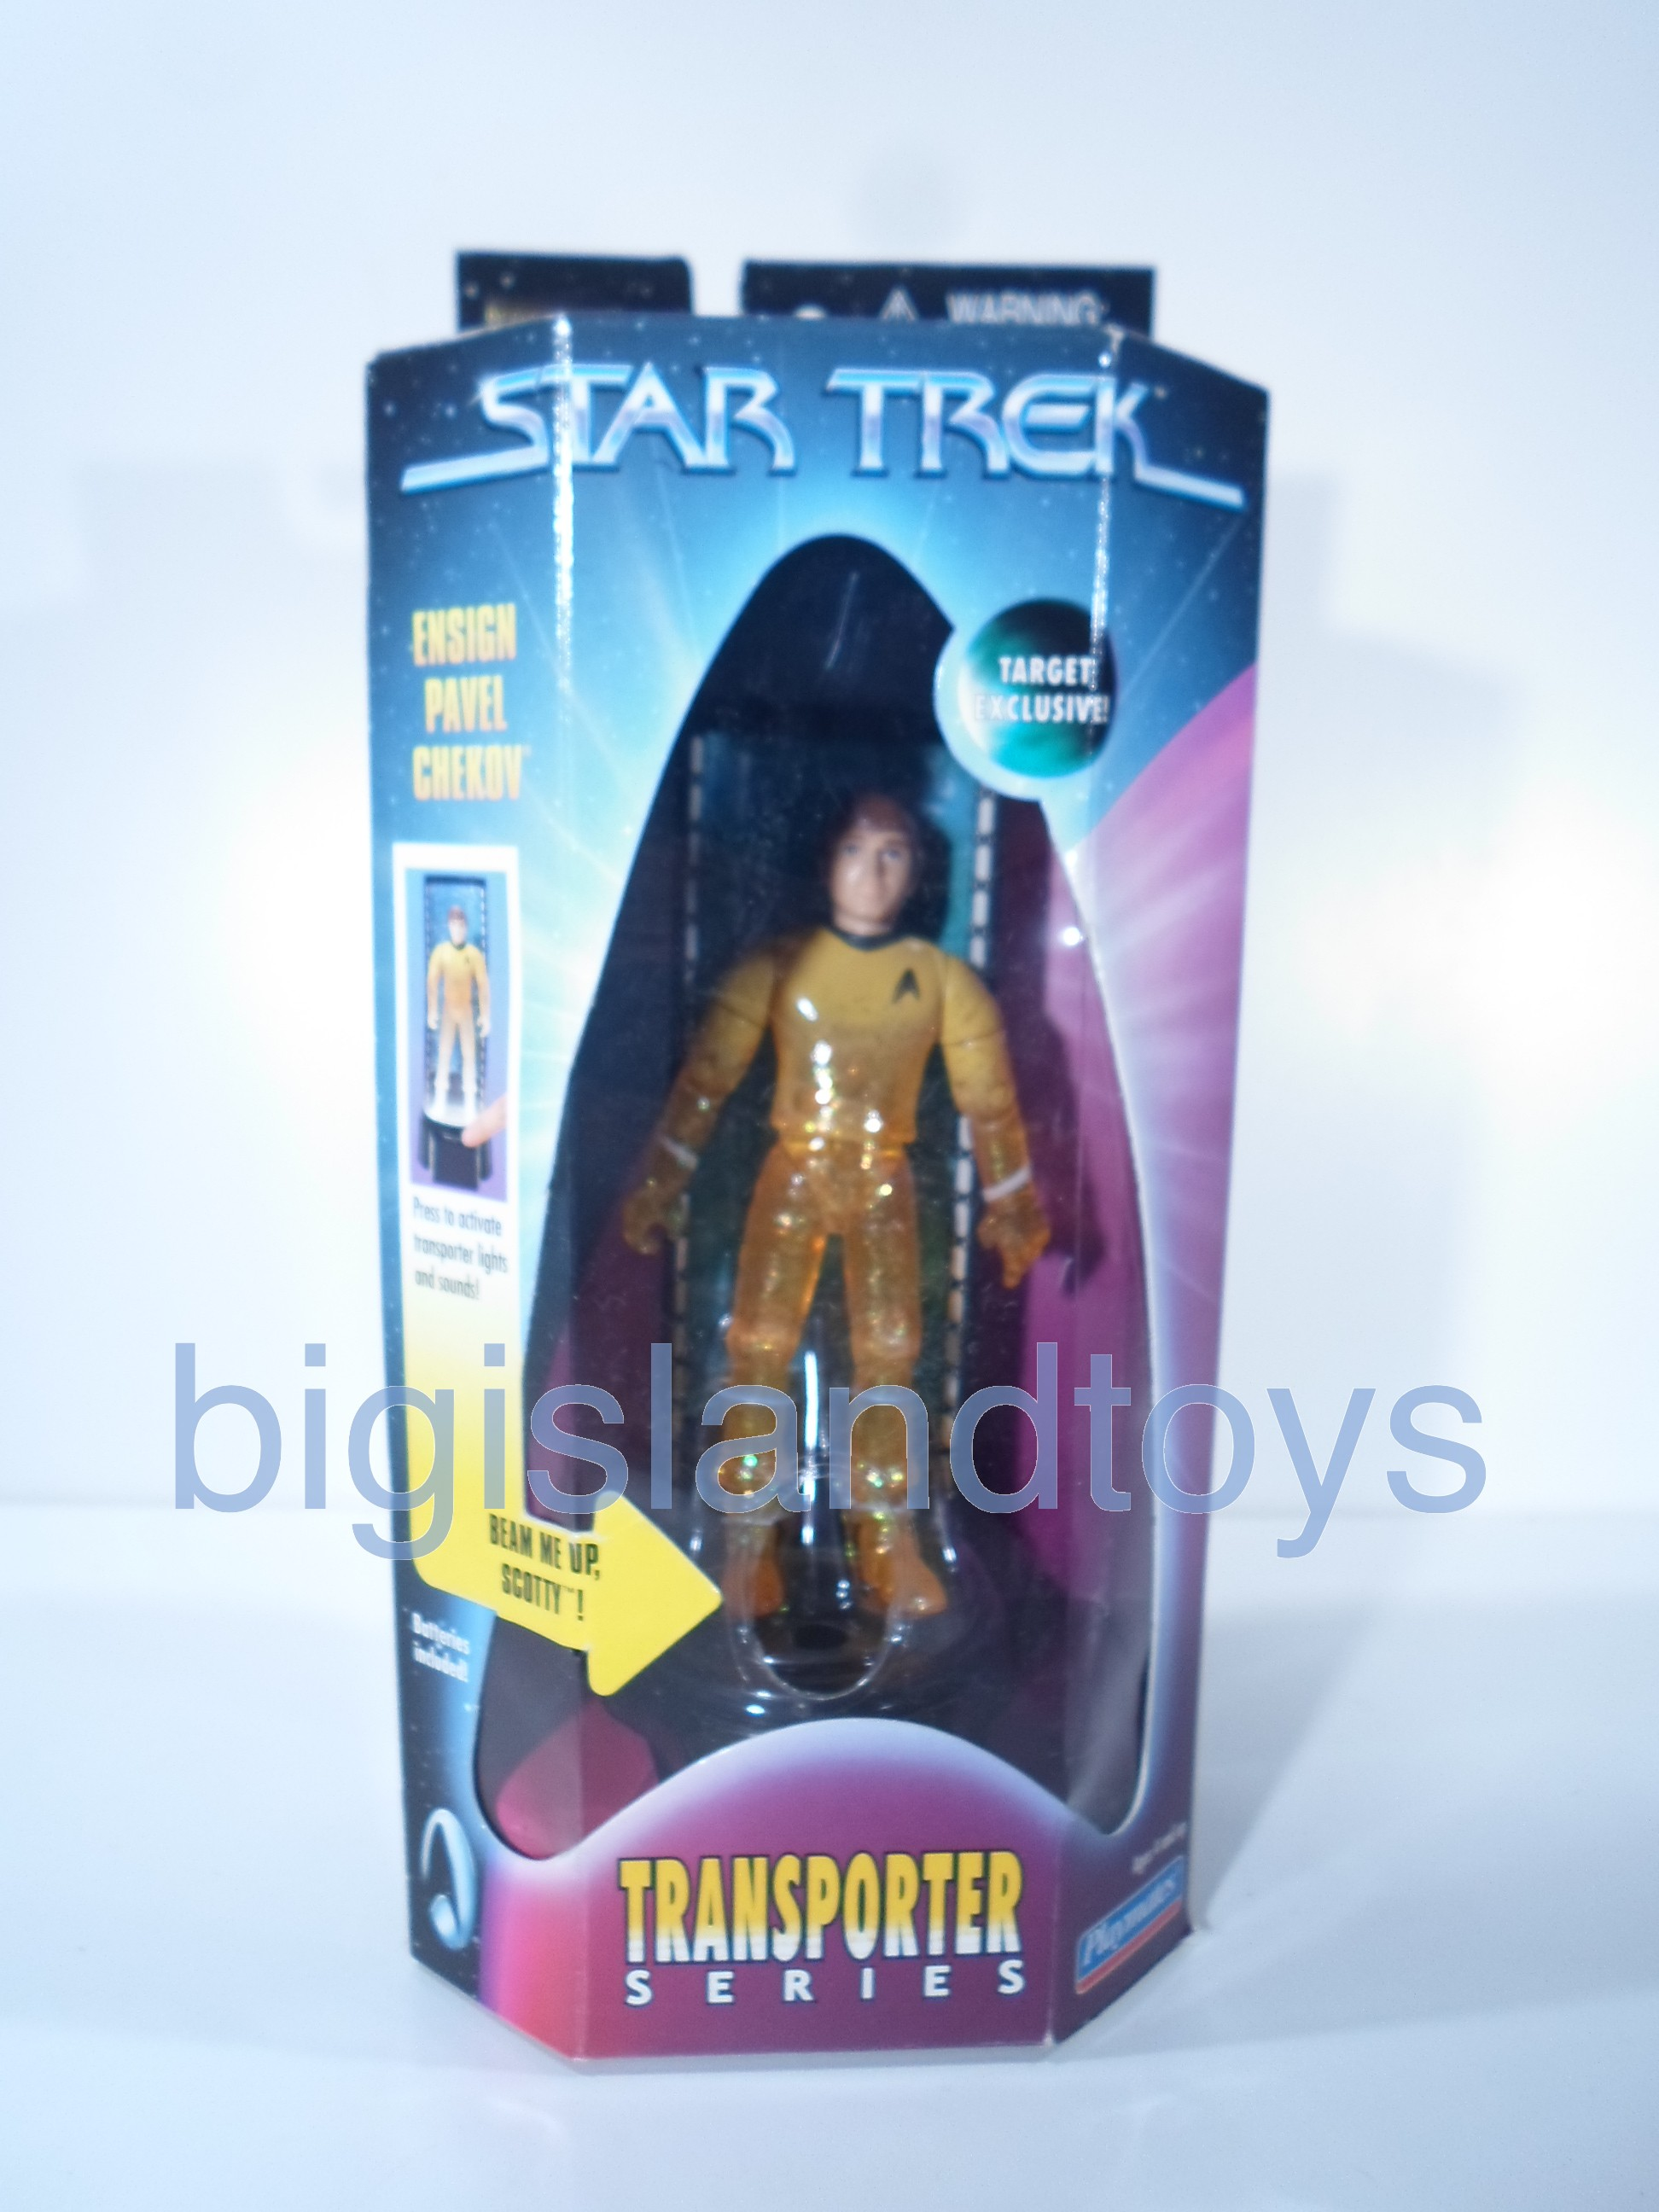 Star Trek  Transporter Series   Ensign Pavel ChekovTarget